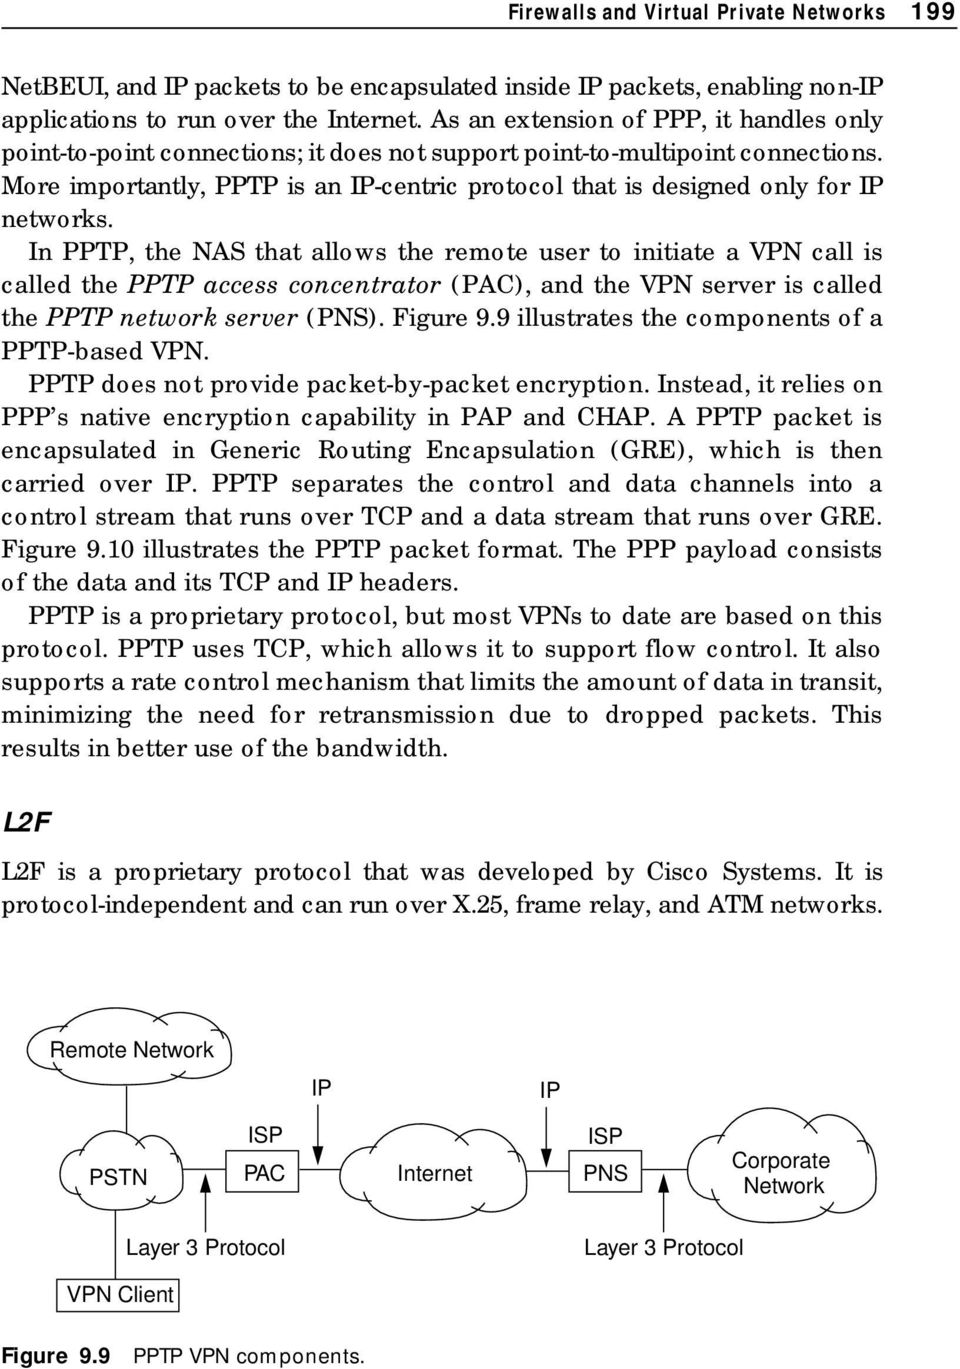 More importantly, PPTP is an IP-centric protocol that is designed only for IP networks.